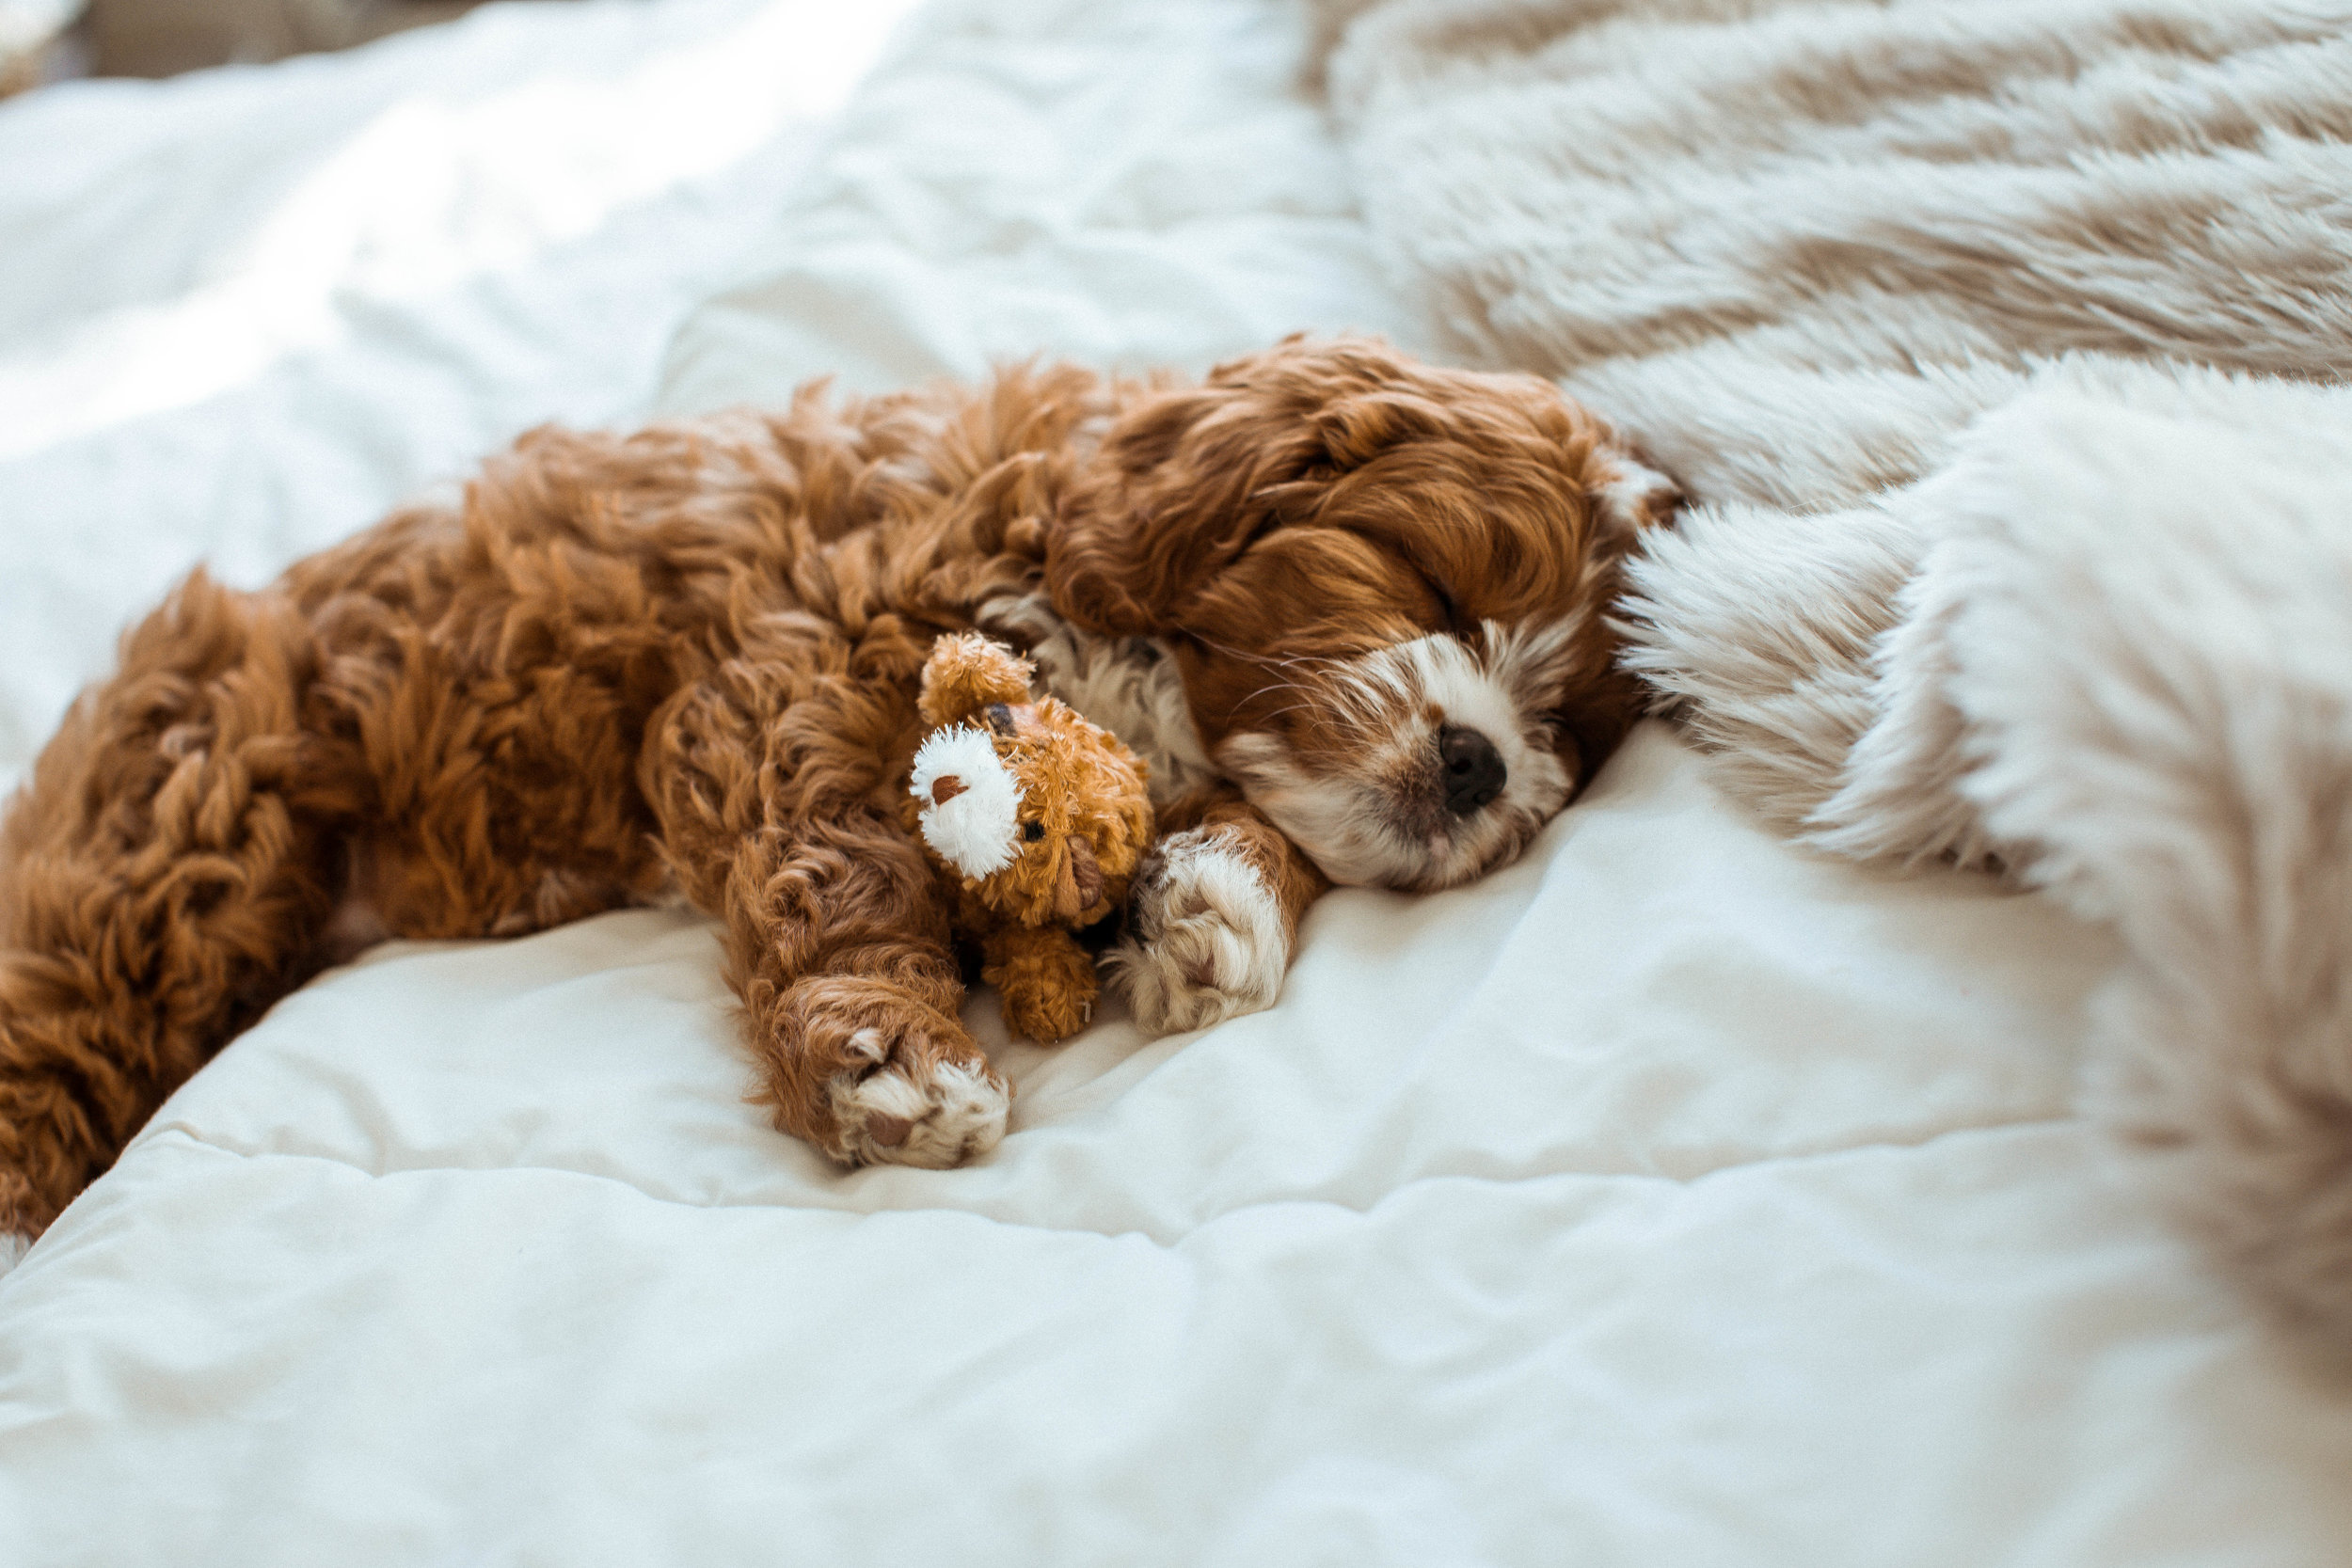 He loves his little stuffed bear so much he sleeps with it next to him every night.